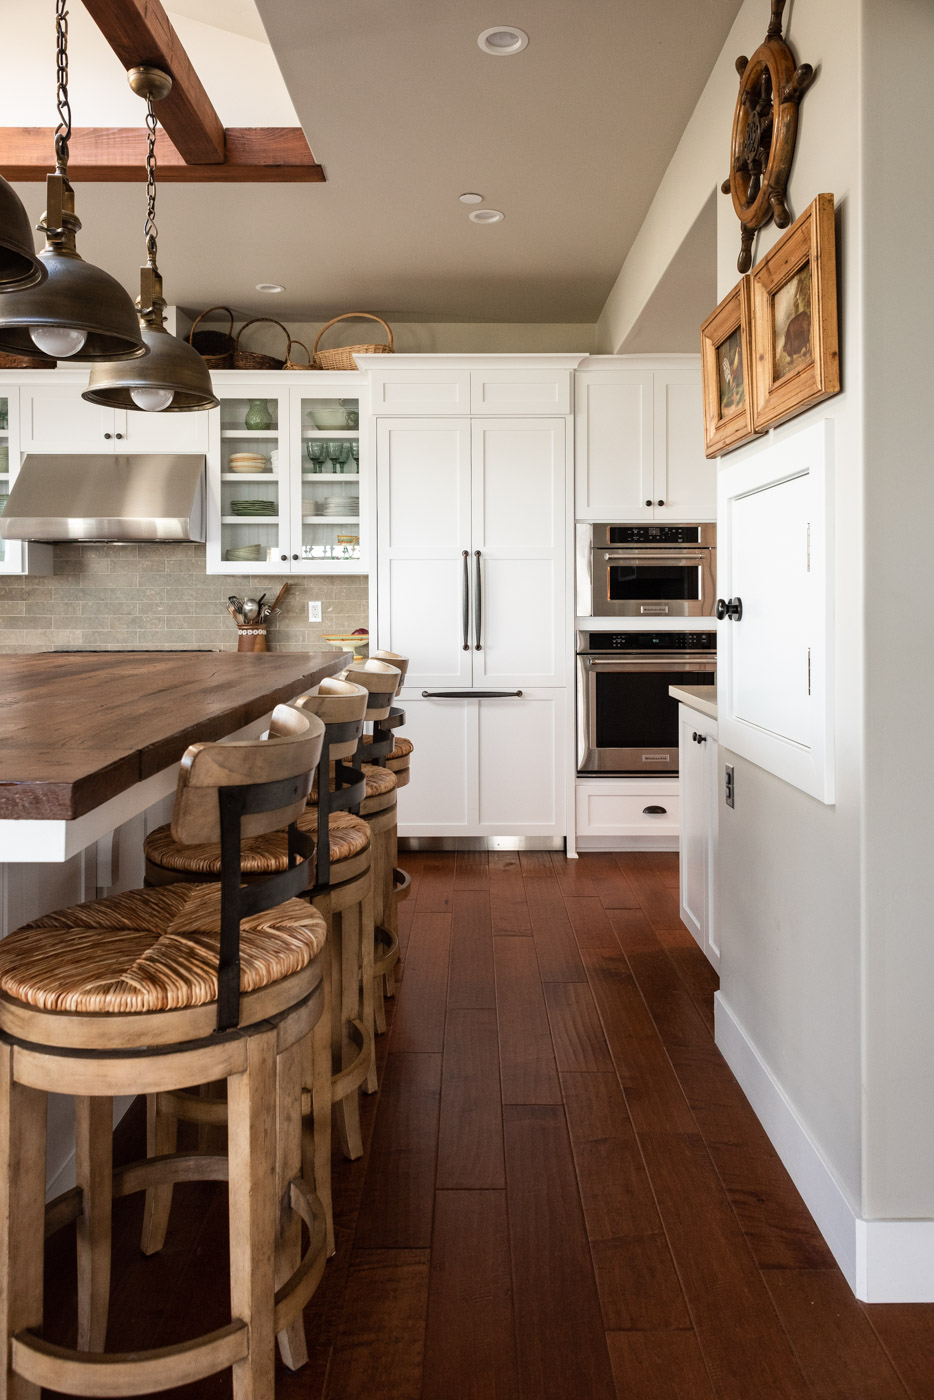 Coastal Craftsman kitchen with custom white painted shaker cabinets and refrigerator door panel